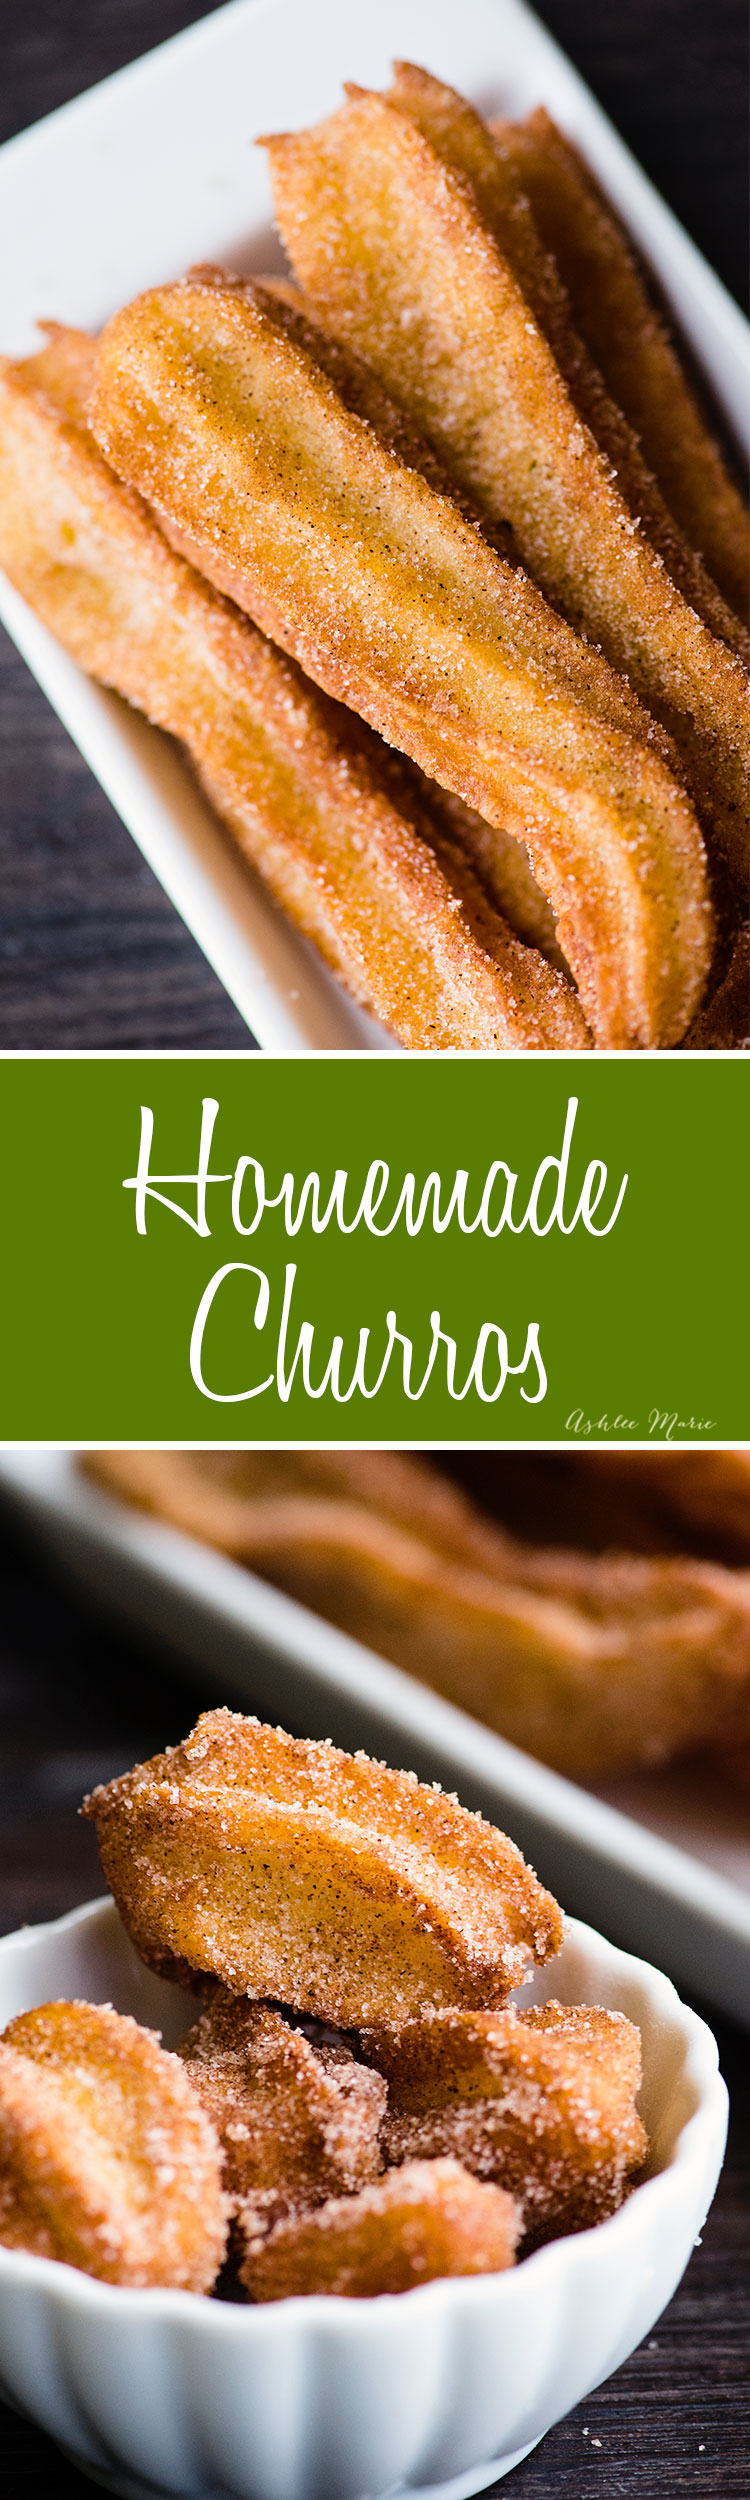 recipe and video tutorial for making fried churros with a pate a choux dough